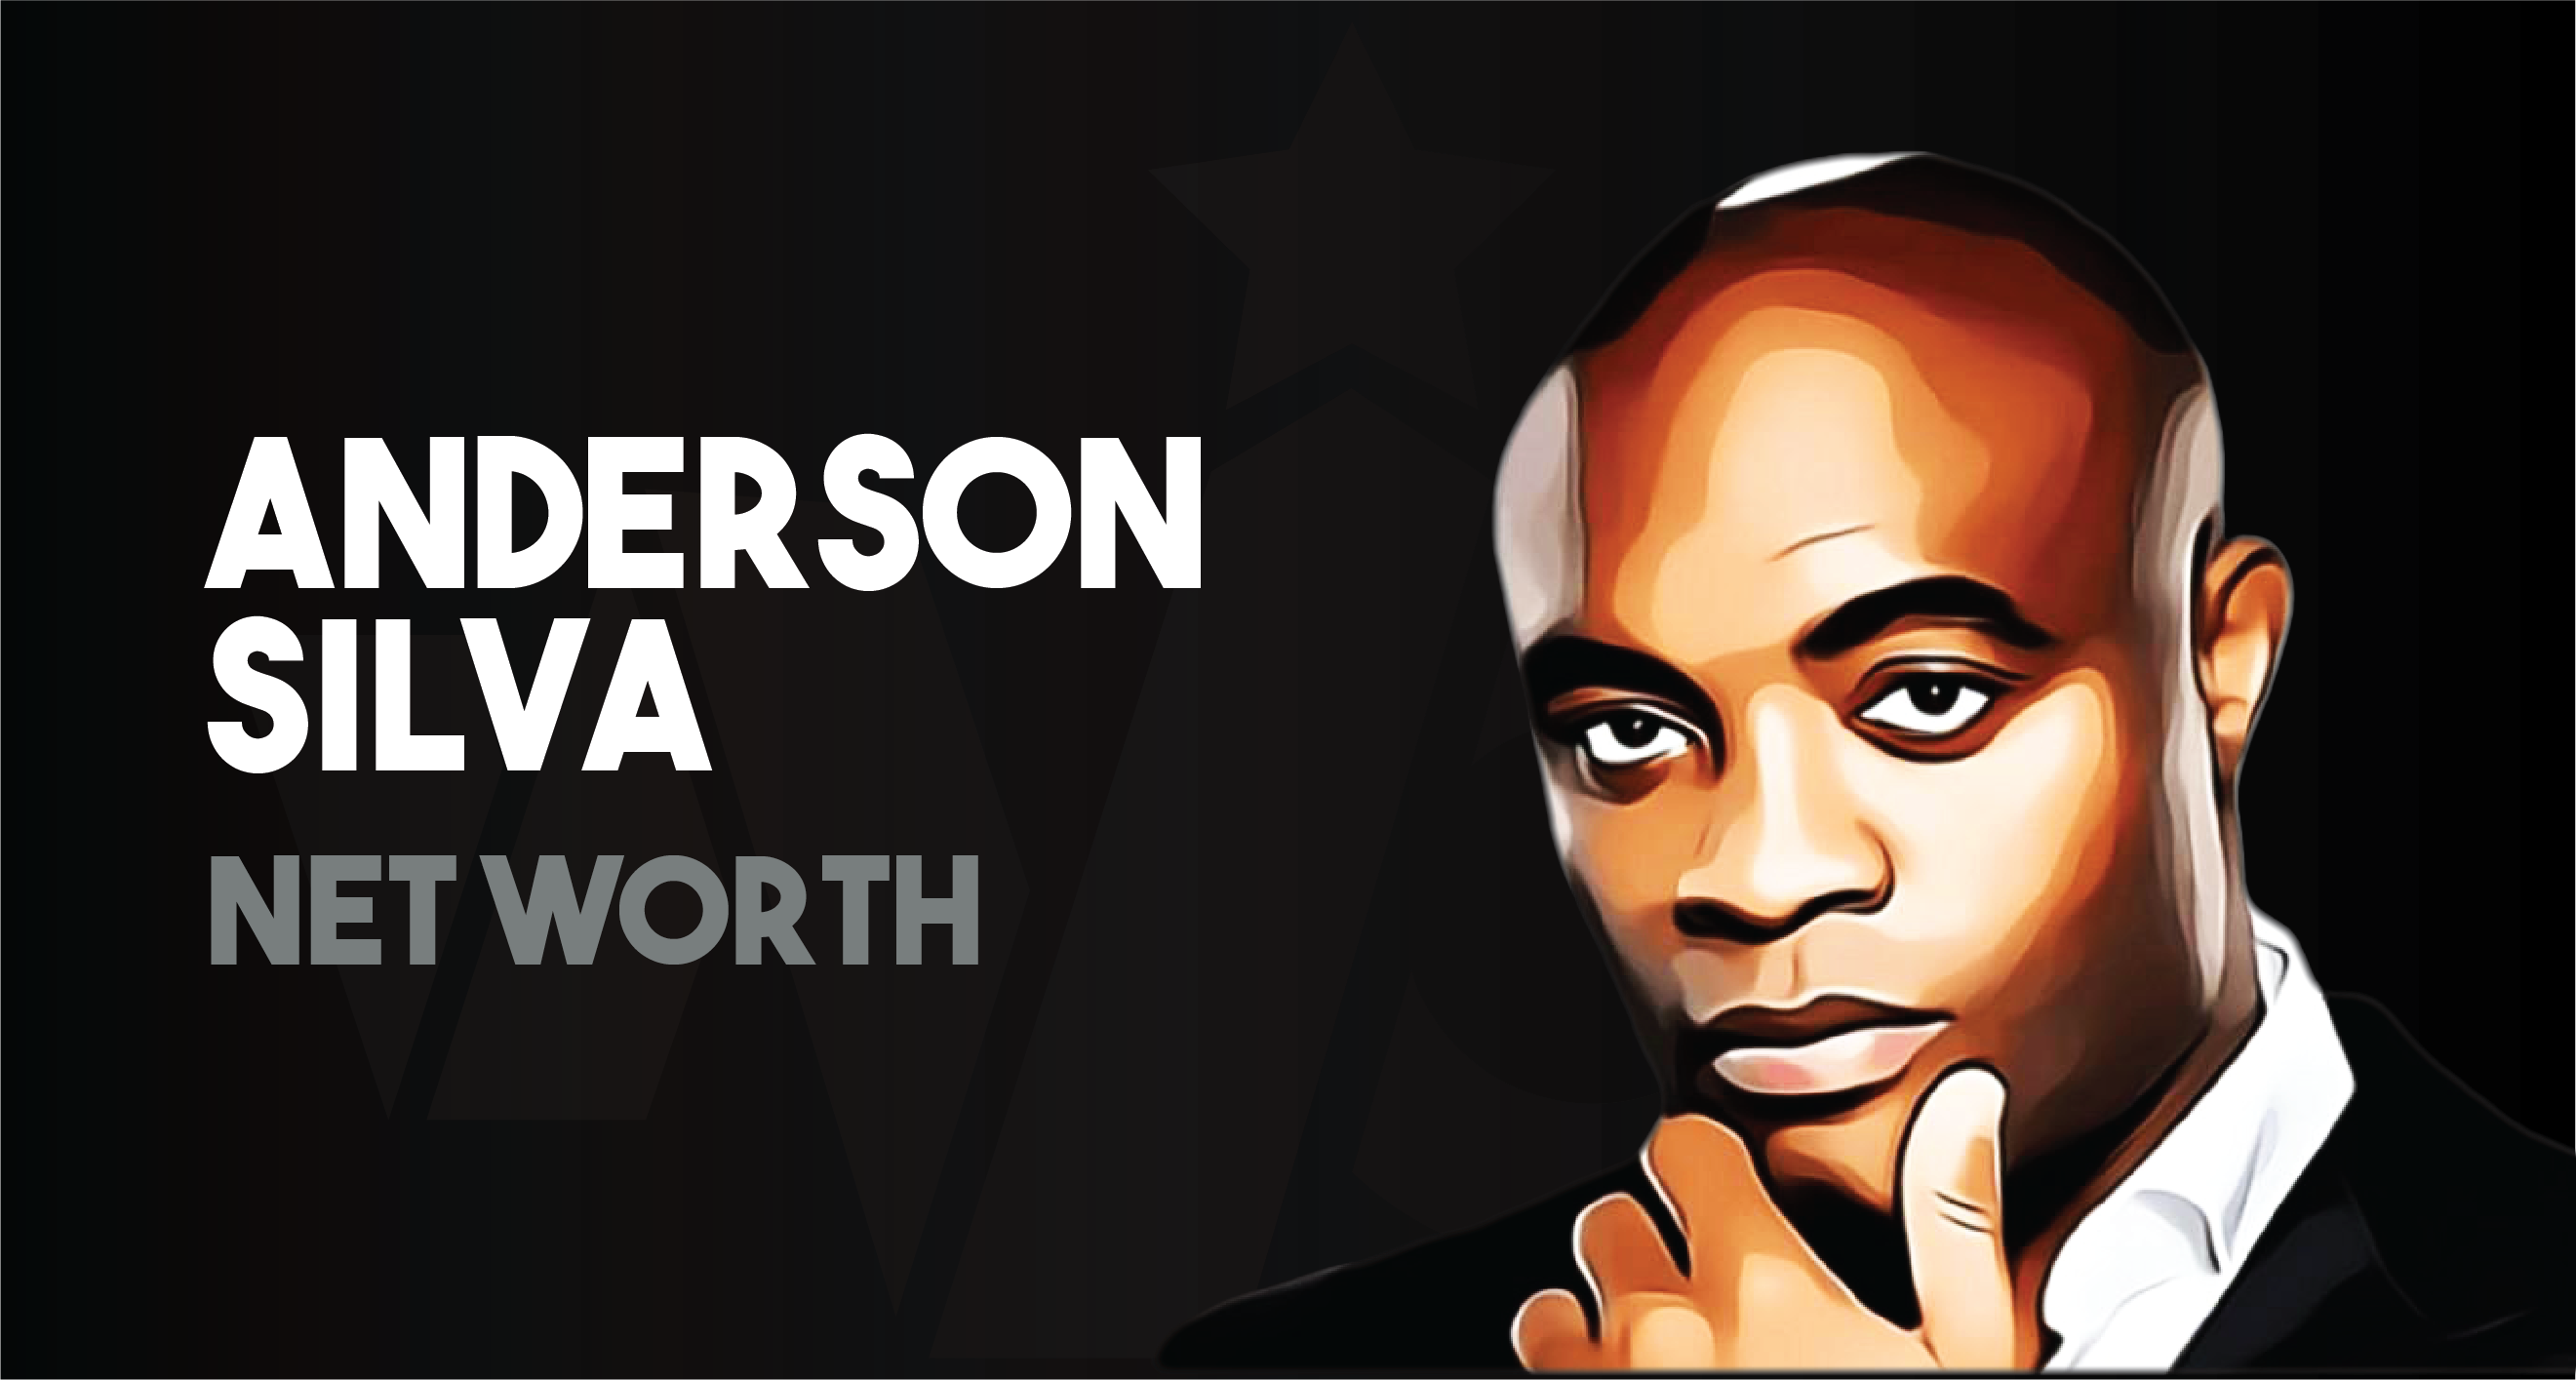 Anderson Silva_Net Worth